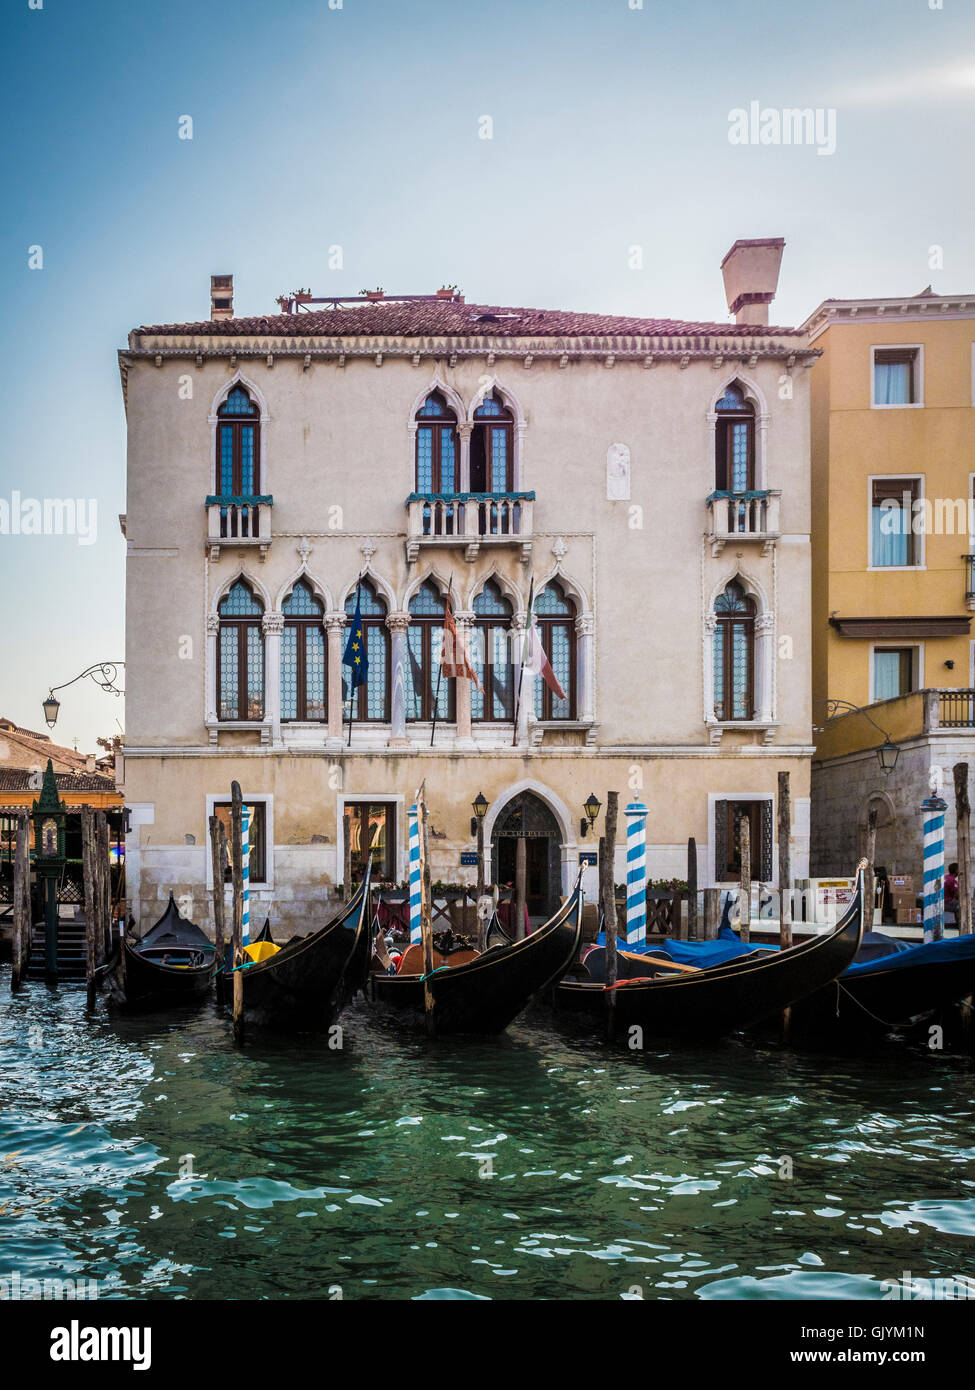 Moored gondolas in front of a traditional venetian building. Venice, Italy. - Stock Image